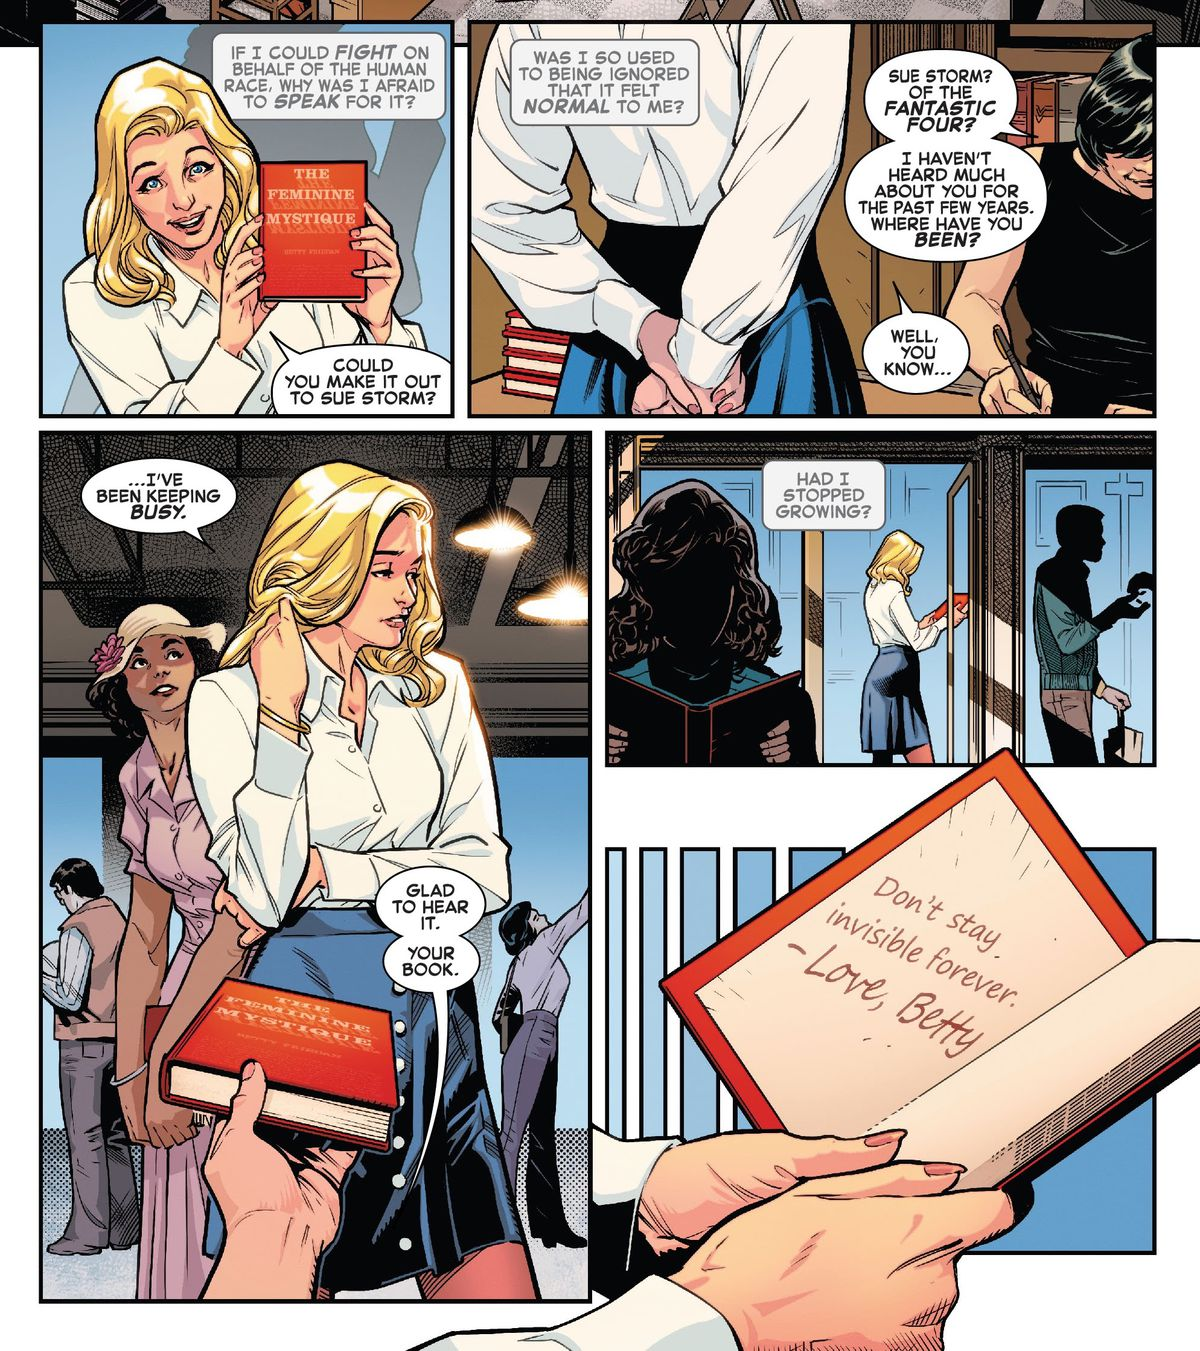 Sue Storm gets her copy of The Feminine Mystique signed by Betty Friedan in Fantastic Four: Life Story #2 (2021).